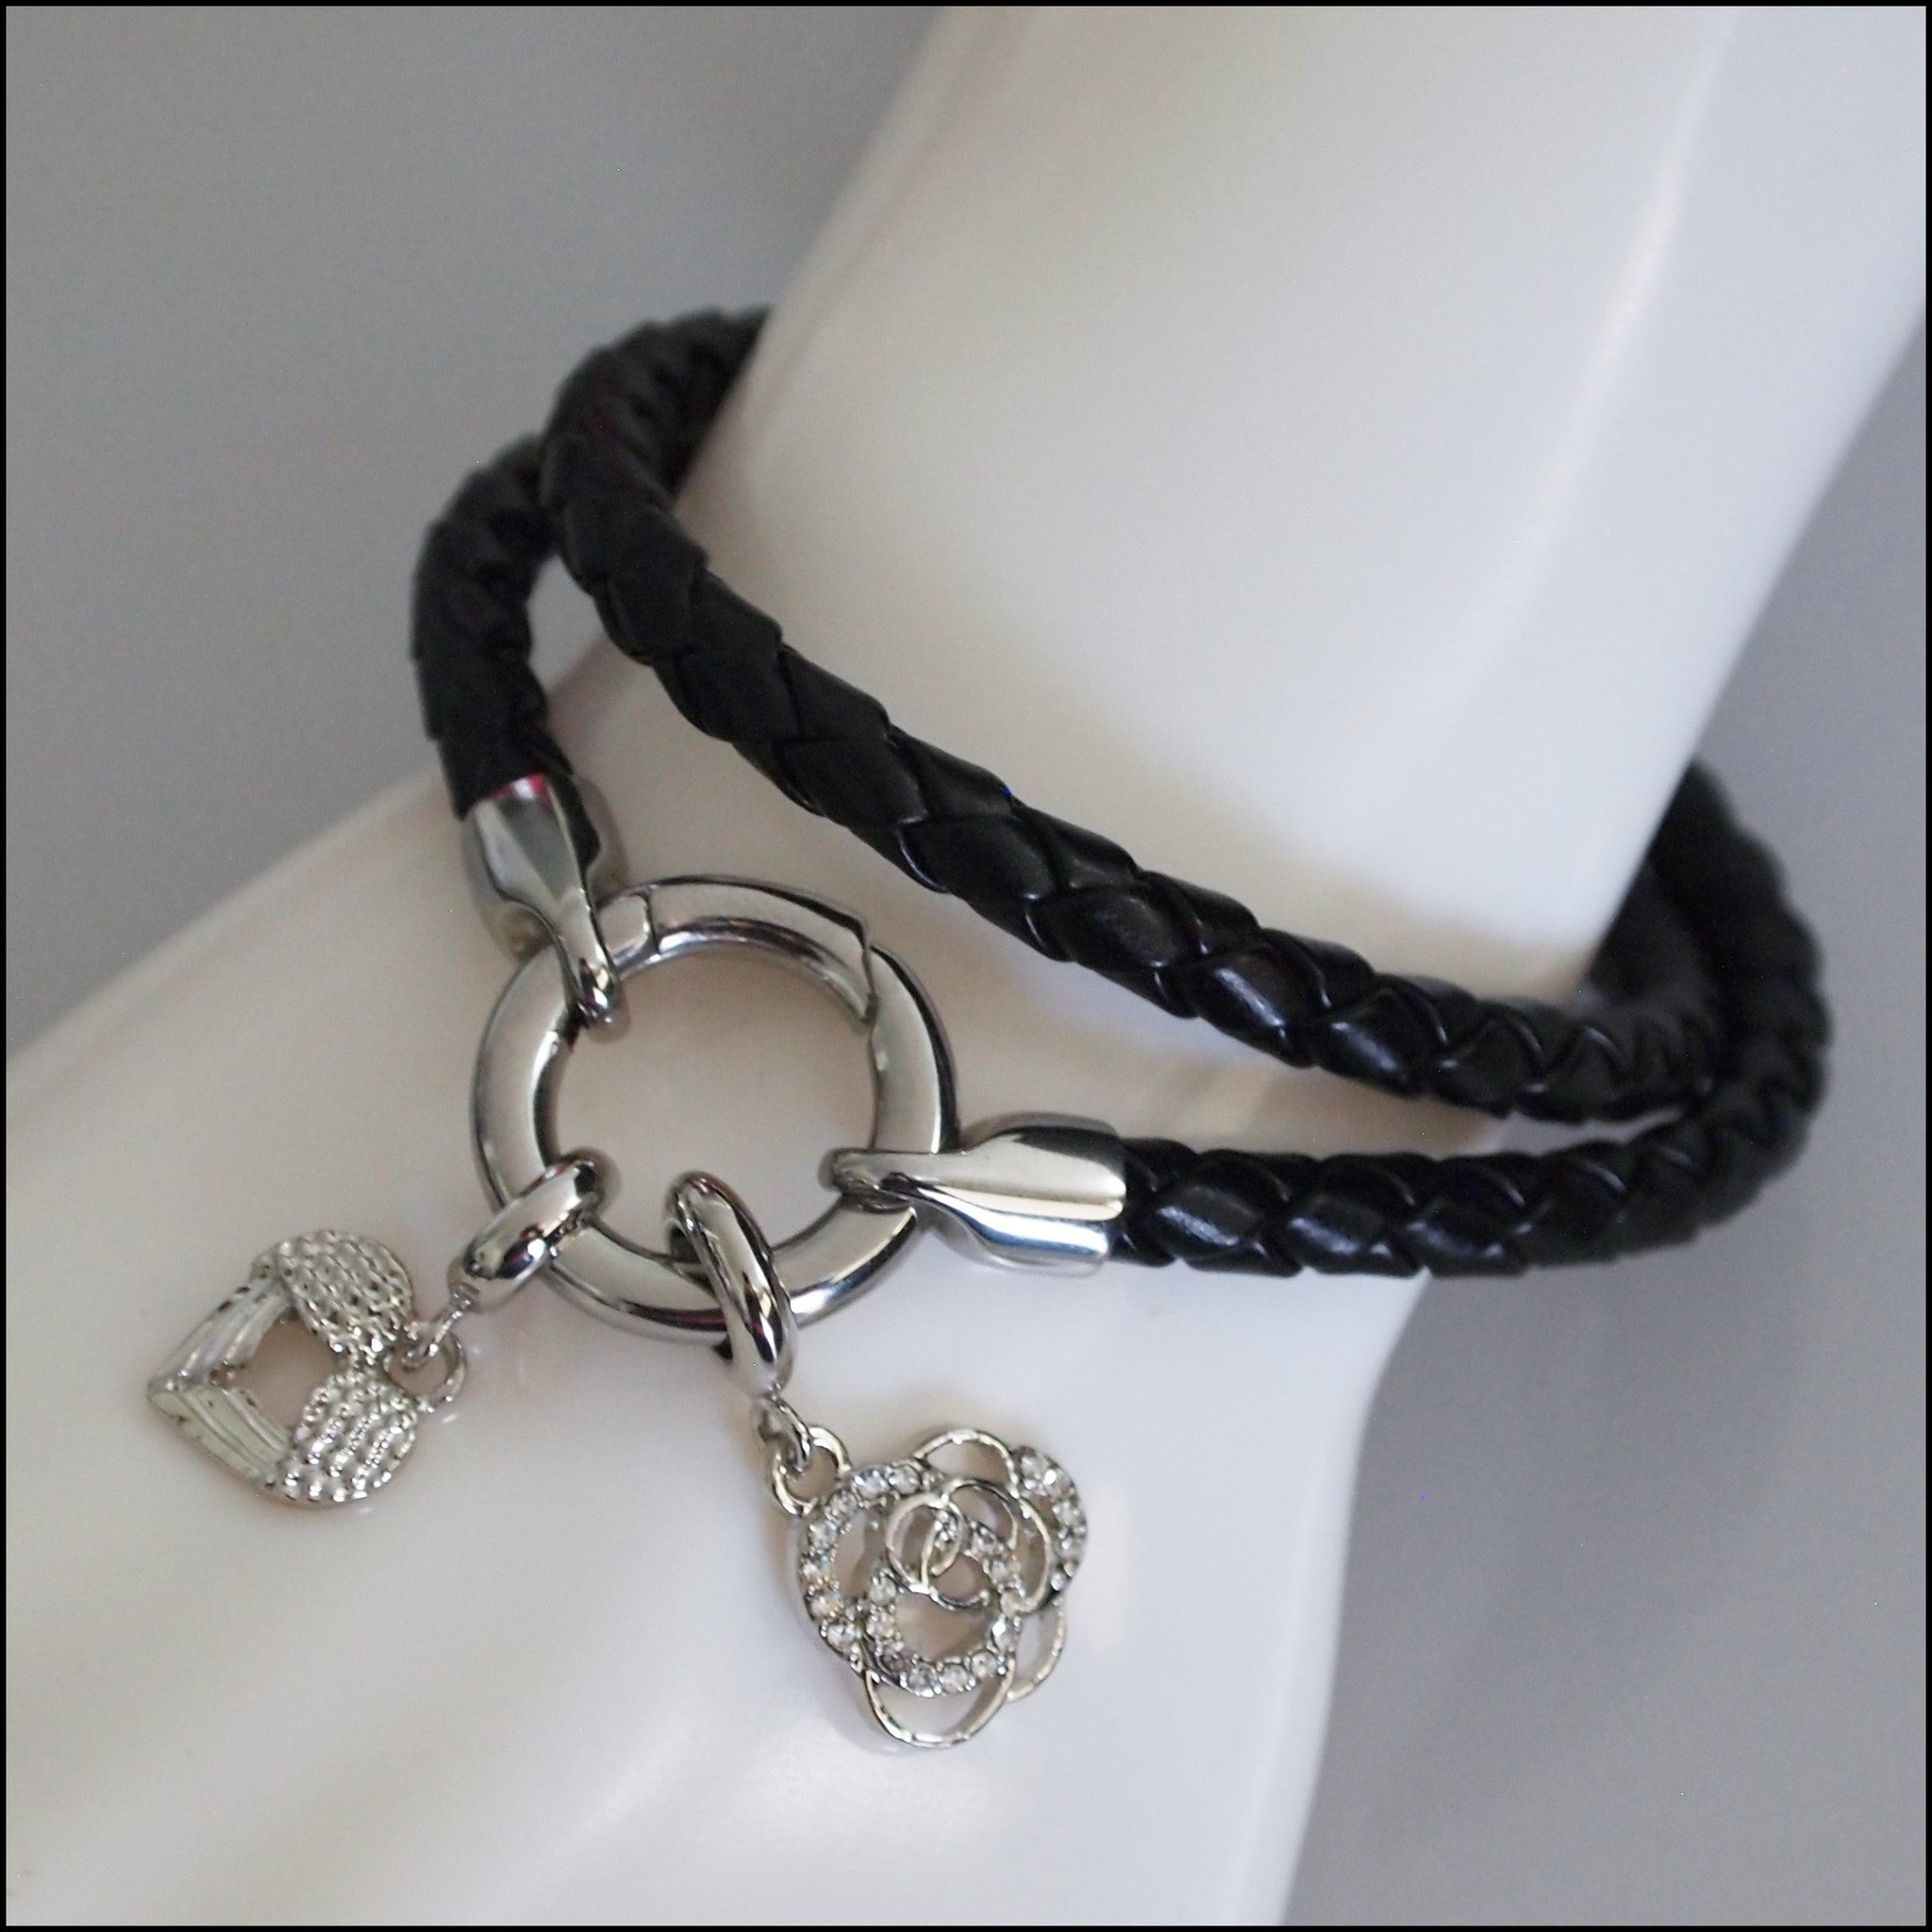 Rolo Leather Bracelet with Charms - Silver Plated - Find Something Special - 1